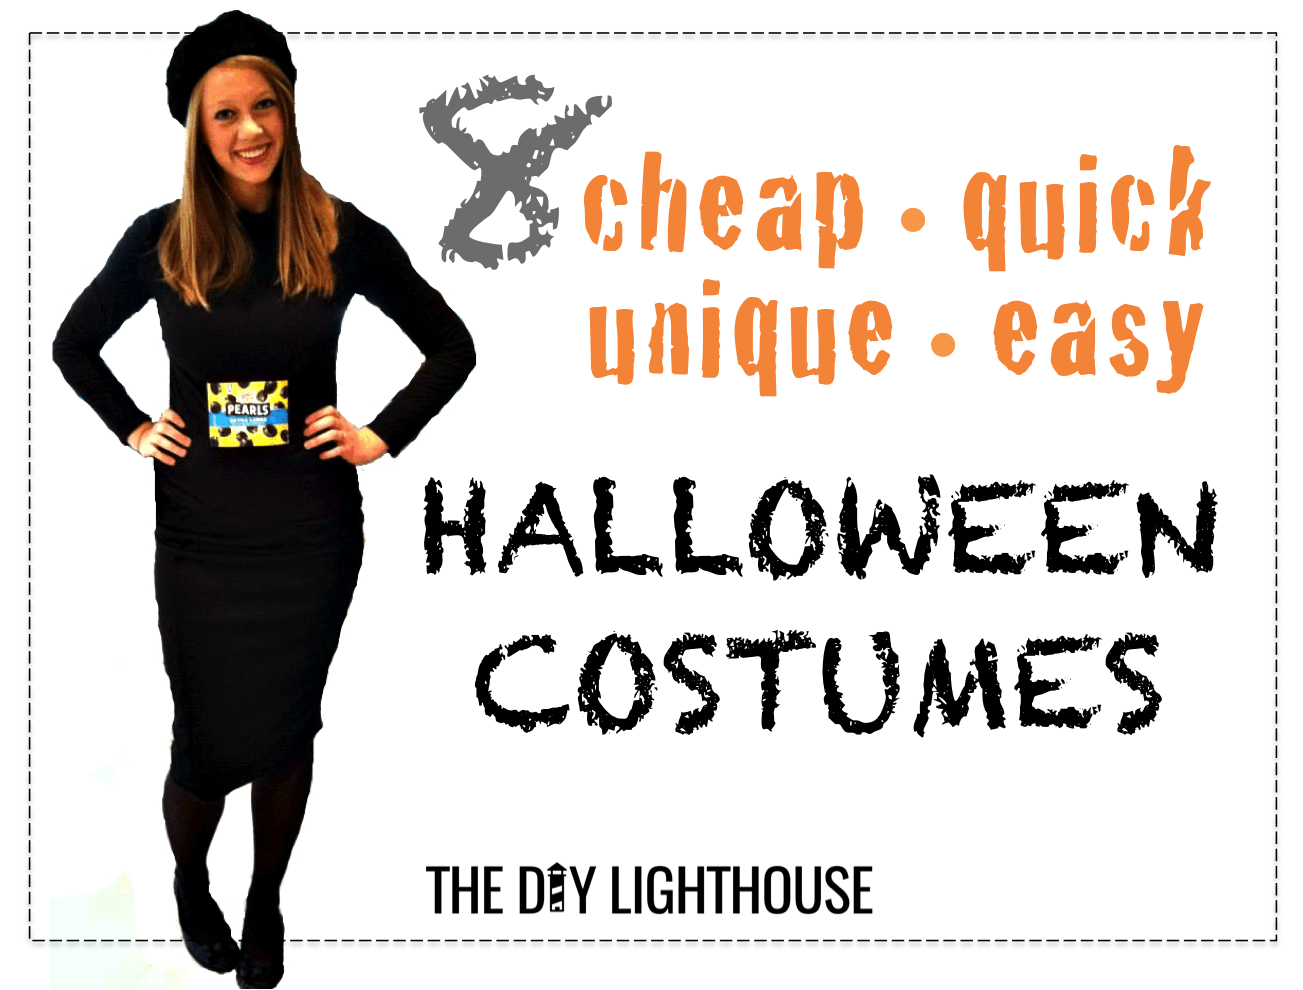 Ideas for cheap quick unique easy halloween costumes 8 ideas for cheap quick unique and easy halloween costumes solutioingenieria Image collections